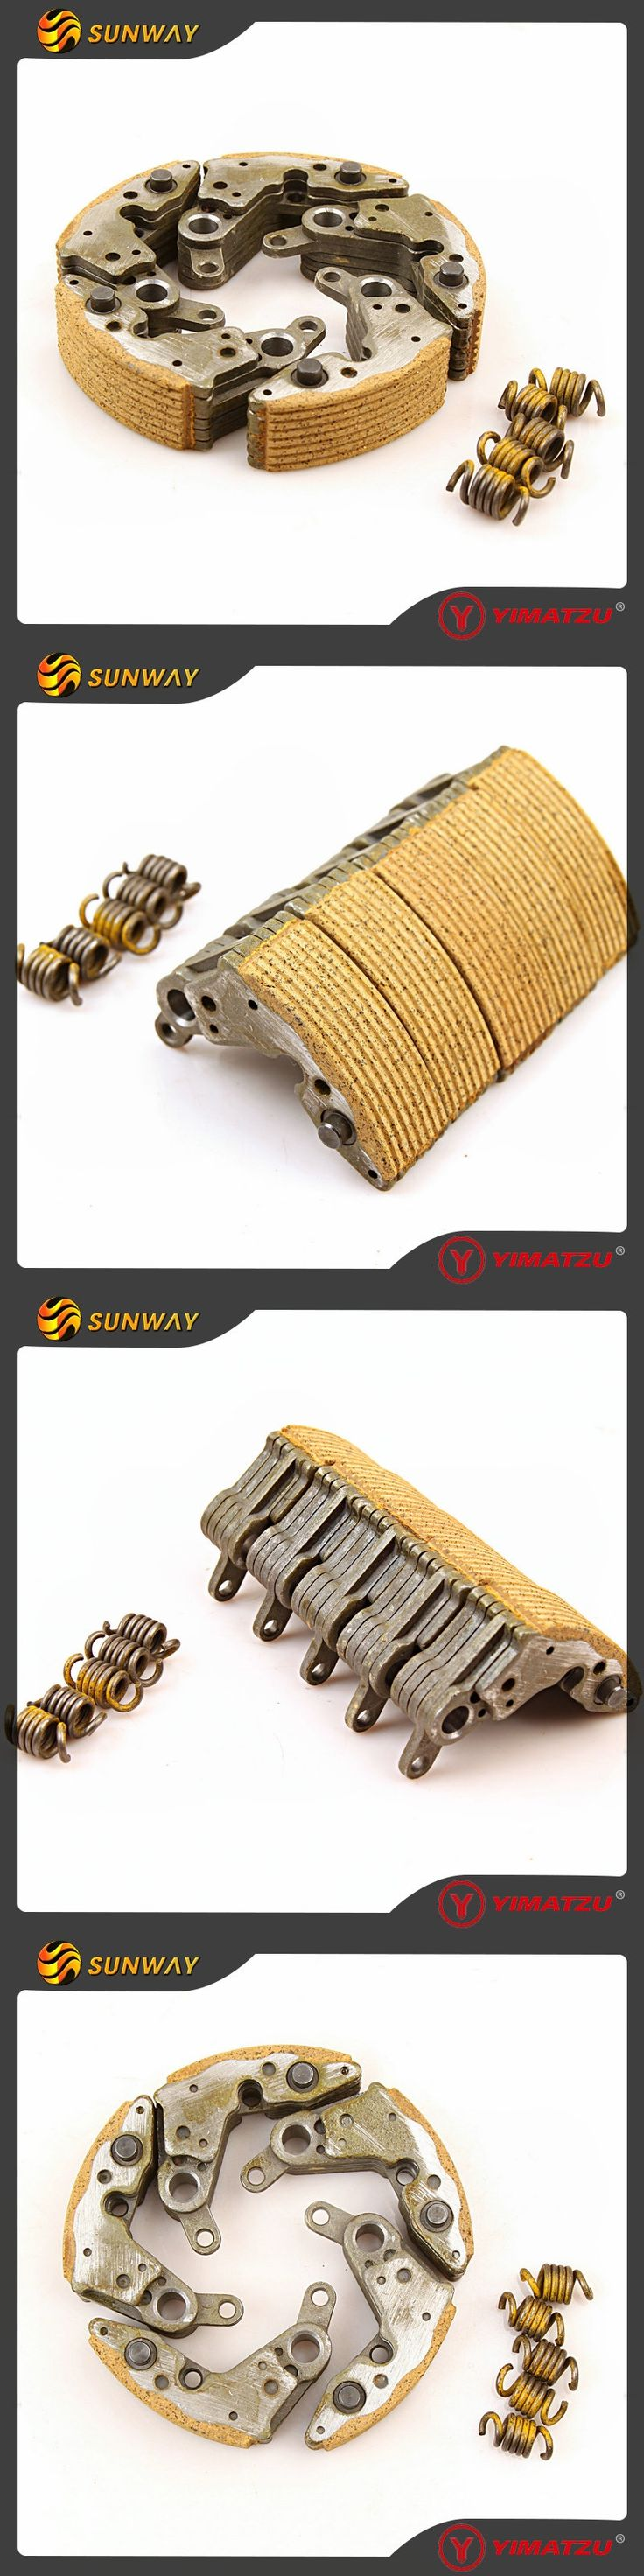 SUNWAY ATV Quad Parts Driving Wheel Shoe for CFMOTO CF800 X8 0800-054200 Free Shipping By Epacket